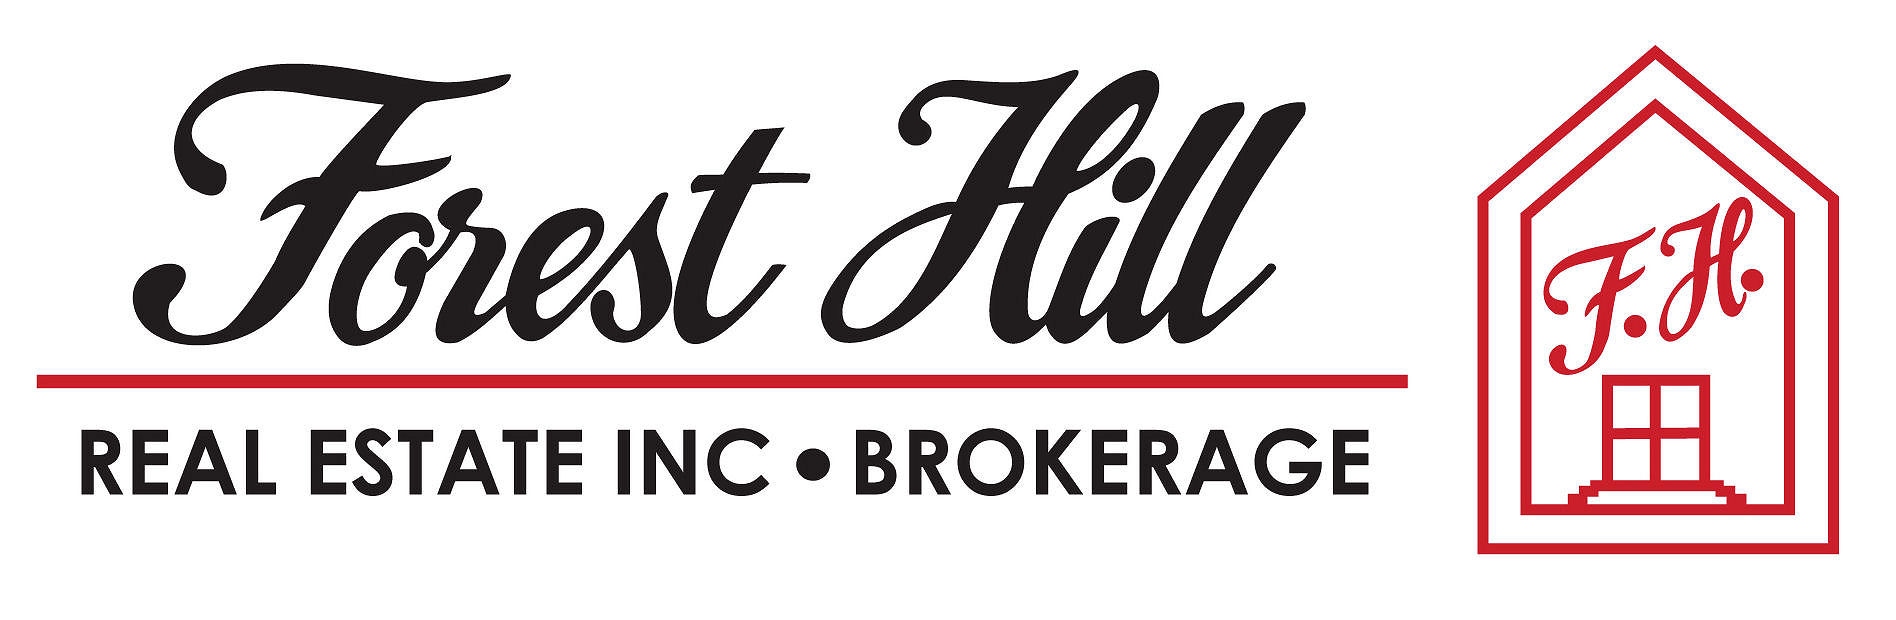 Forest Hill Real Estate Inc, Brokerage